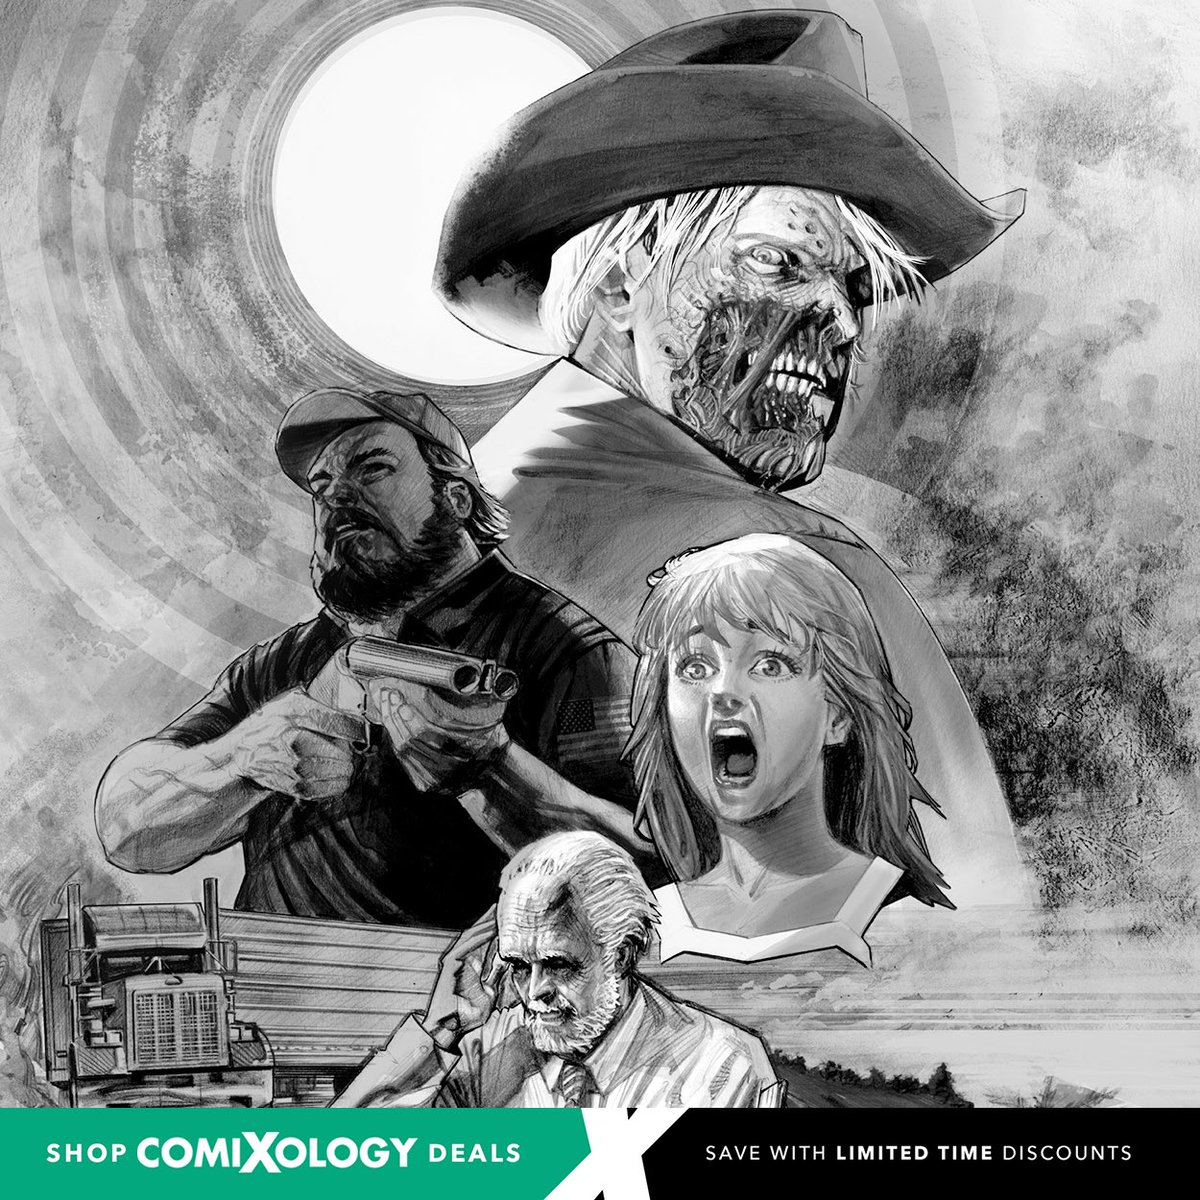 """50% Off Digital Comic Book Sale! @comixology is having their Small Press Mega Sale from August 7th to September 8! Read @CriticalEntLA #comicbooks by going to http://comixology.com and searching """"Critical Entertainment"""" or any of our titles.   #comicbook #sale #digitalcomics pic.twitter.com/EPpDgWniUg"""